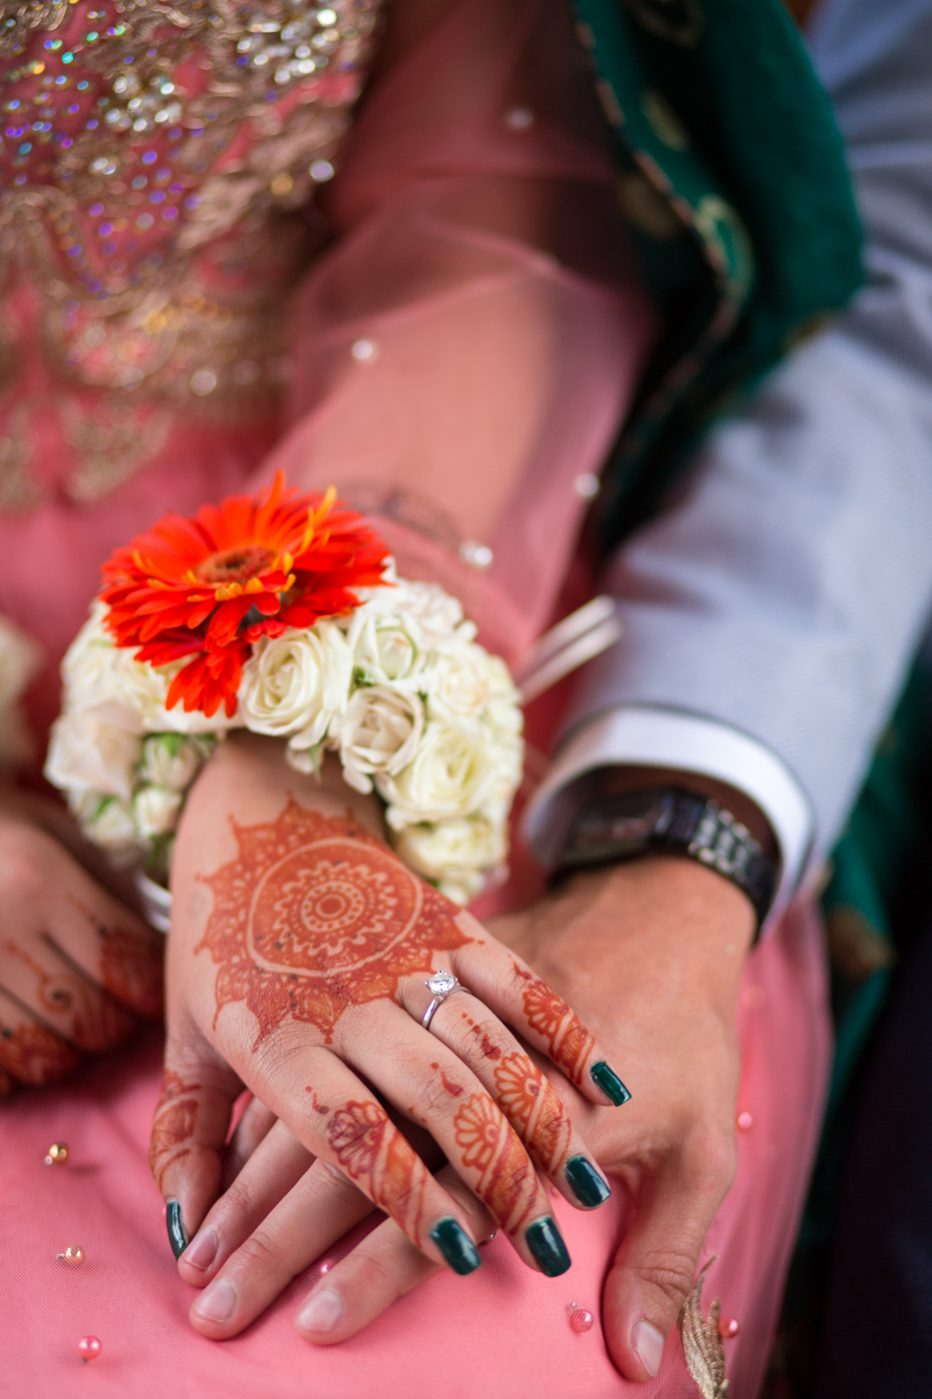 Bride/Groom ring ceremony and Nikkah, hand in hand